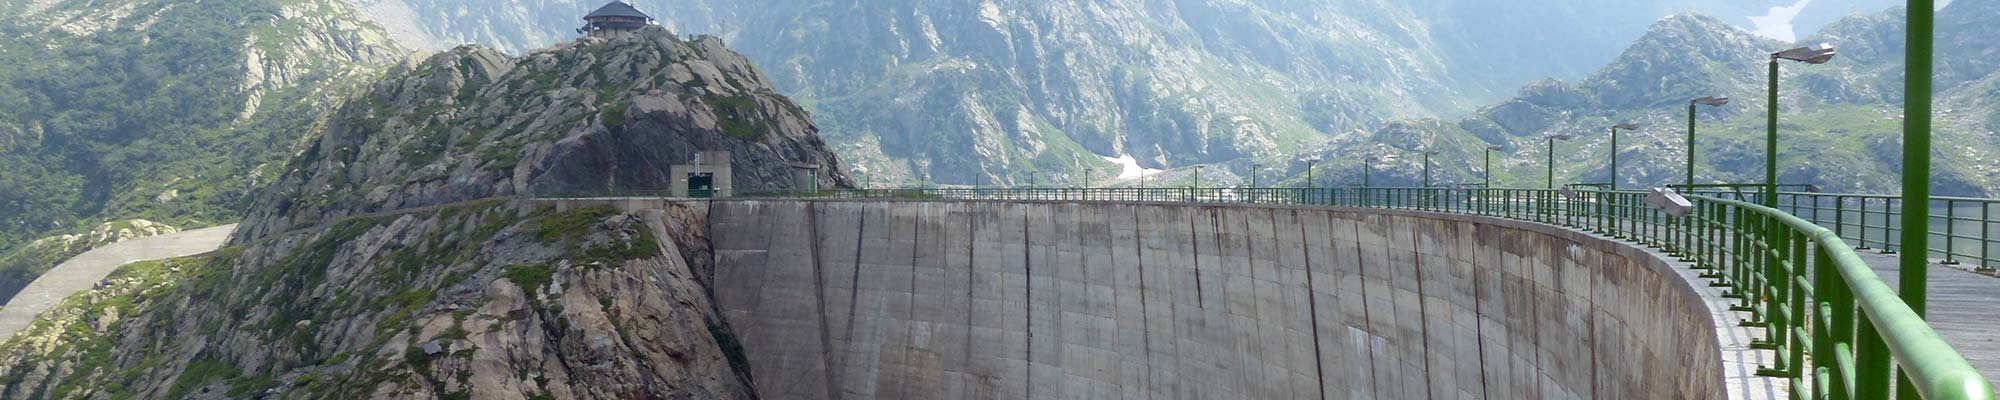 Dam Monitoring Data acquisition for reliable, stand-alone dam-structure monitoring